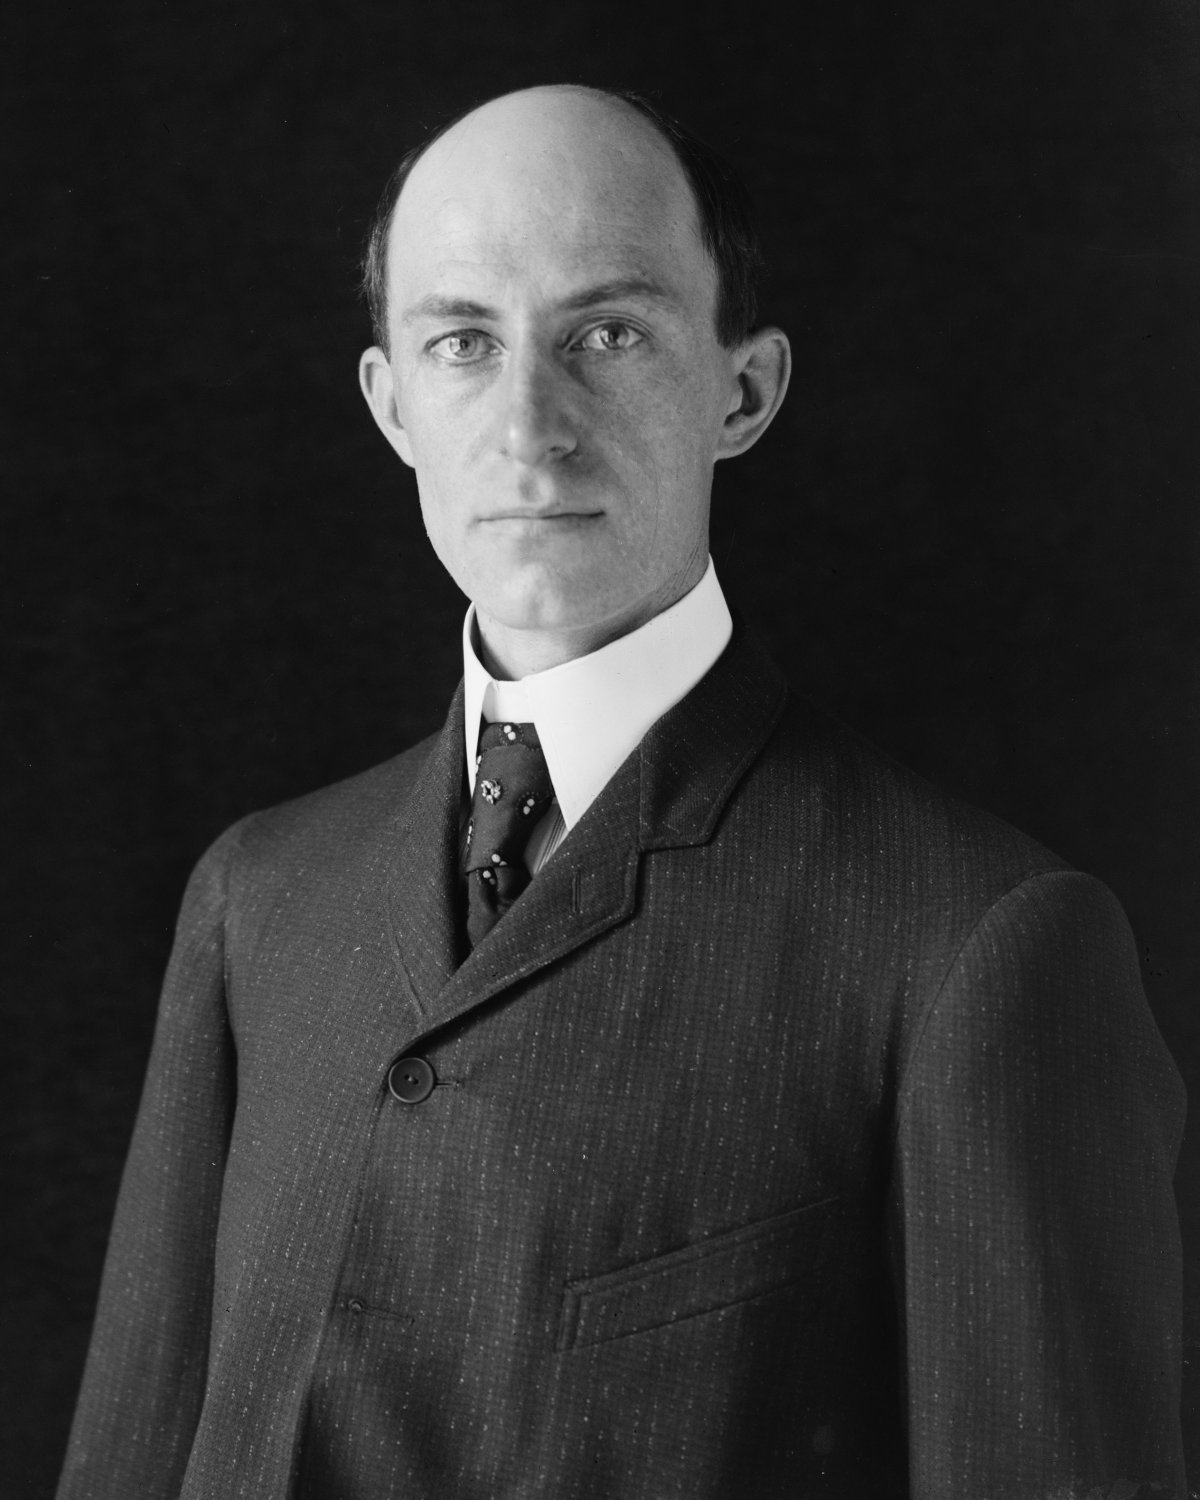 WILBUR WRIGHT AVIATION PIONEER - 8X10 PHOTO (BB-473)